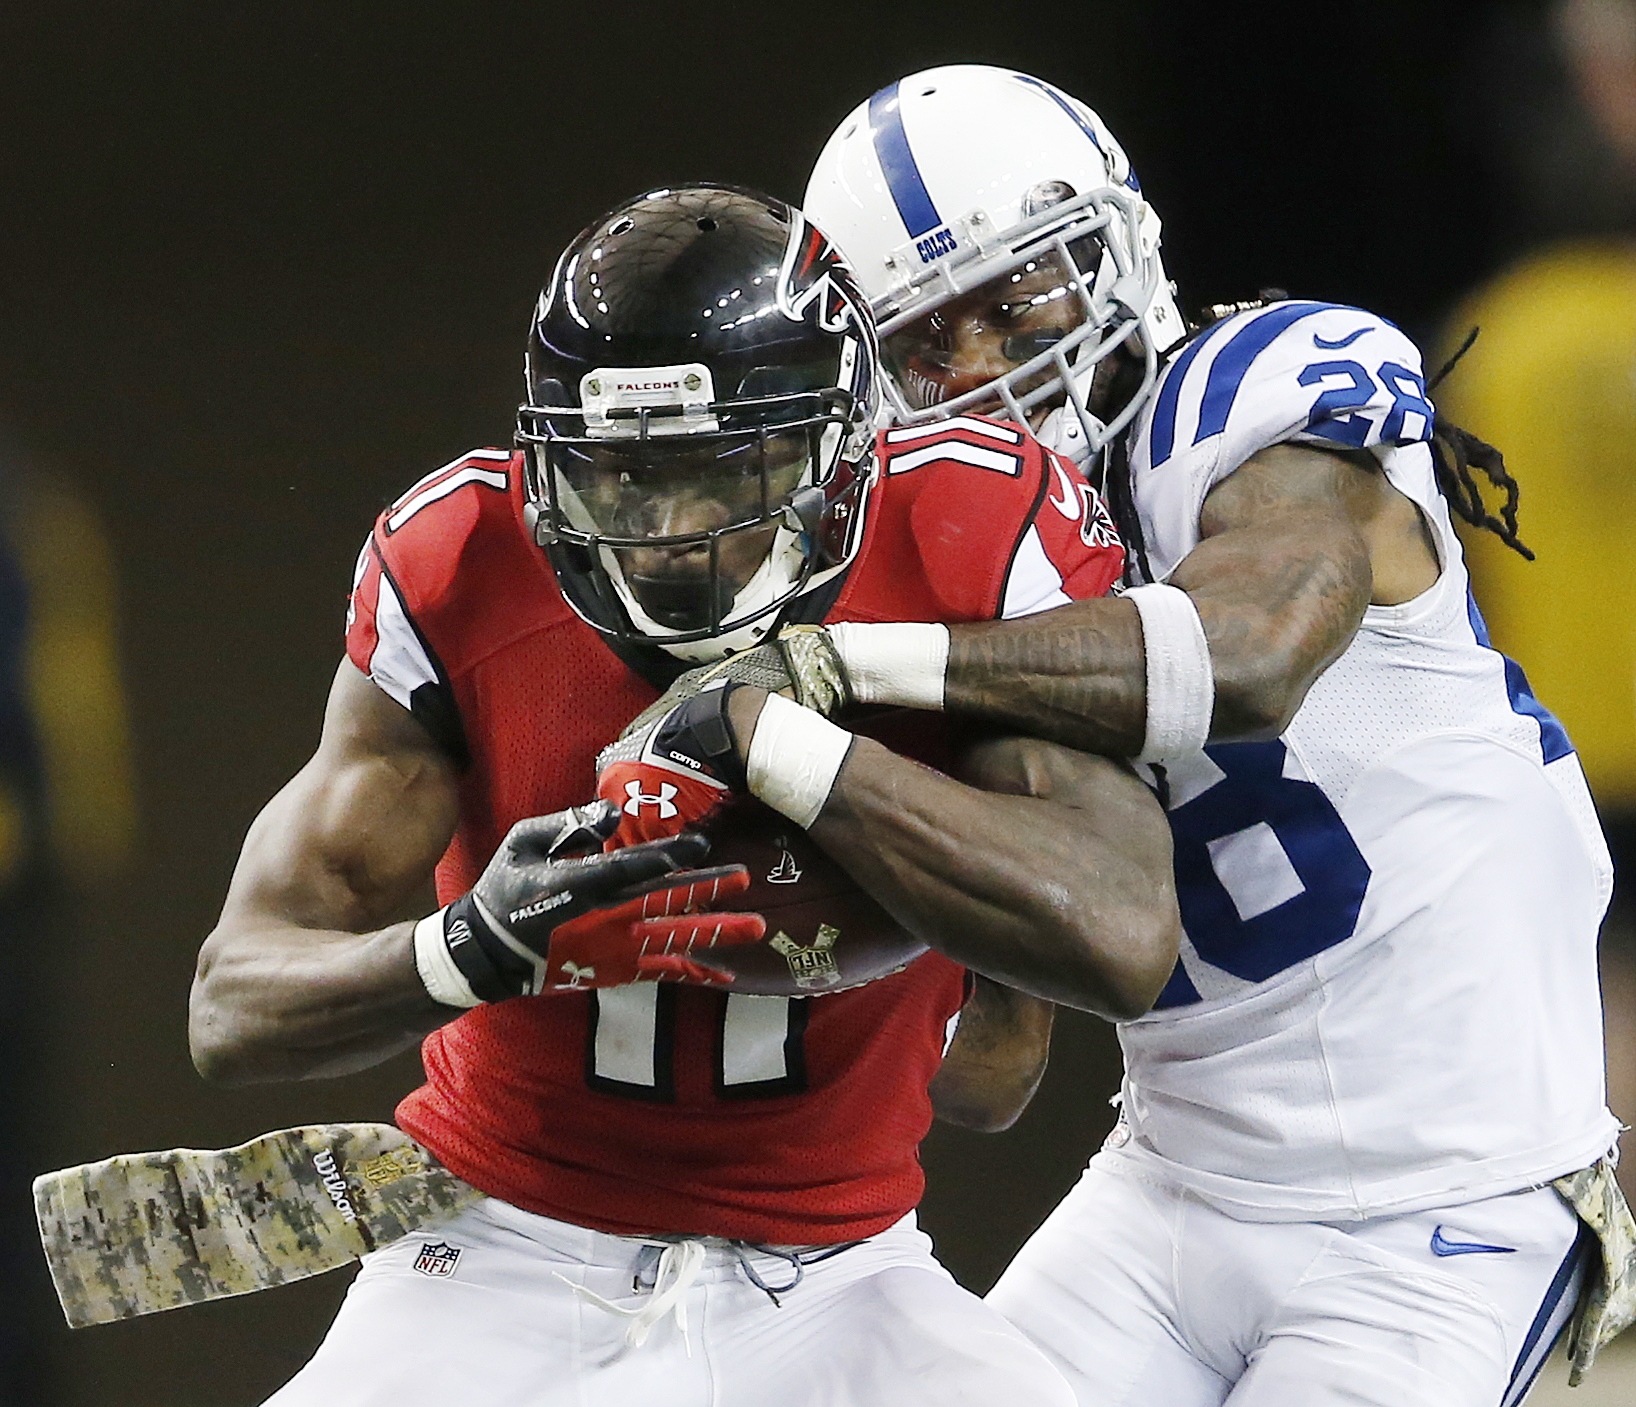 FILE - In this Nov. 22, 2015, file photo, Atlanta Falcons wide receiver Julio Jones (11) makes the catch against Indianapolis Colts cornerback Greg Toler (28) during the second half of an NFL football game in Atlanta. The New Orleans Saints play the Falco